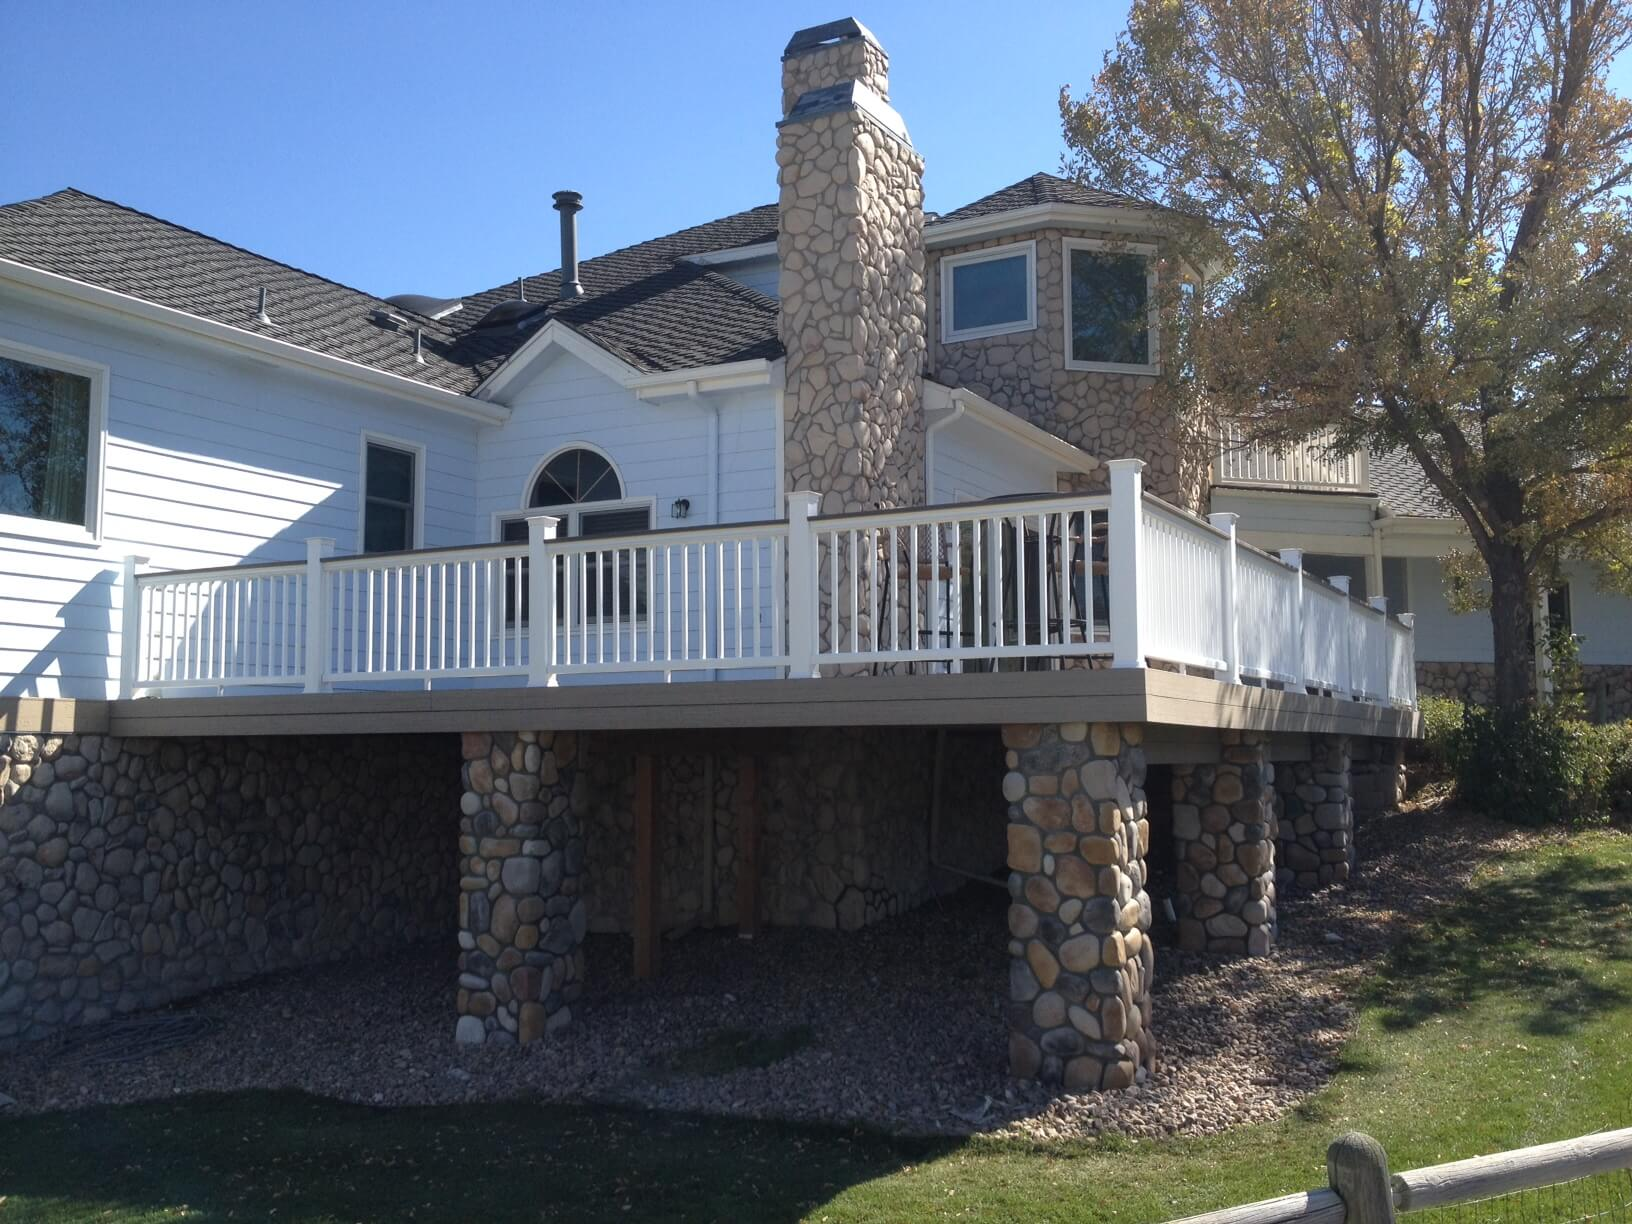 Custom elevated deck with railing and stone columns